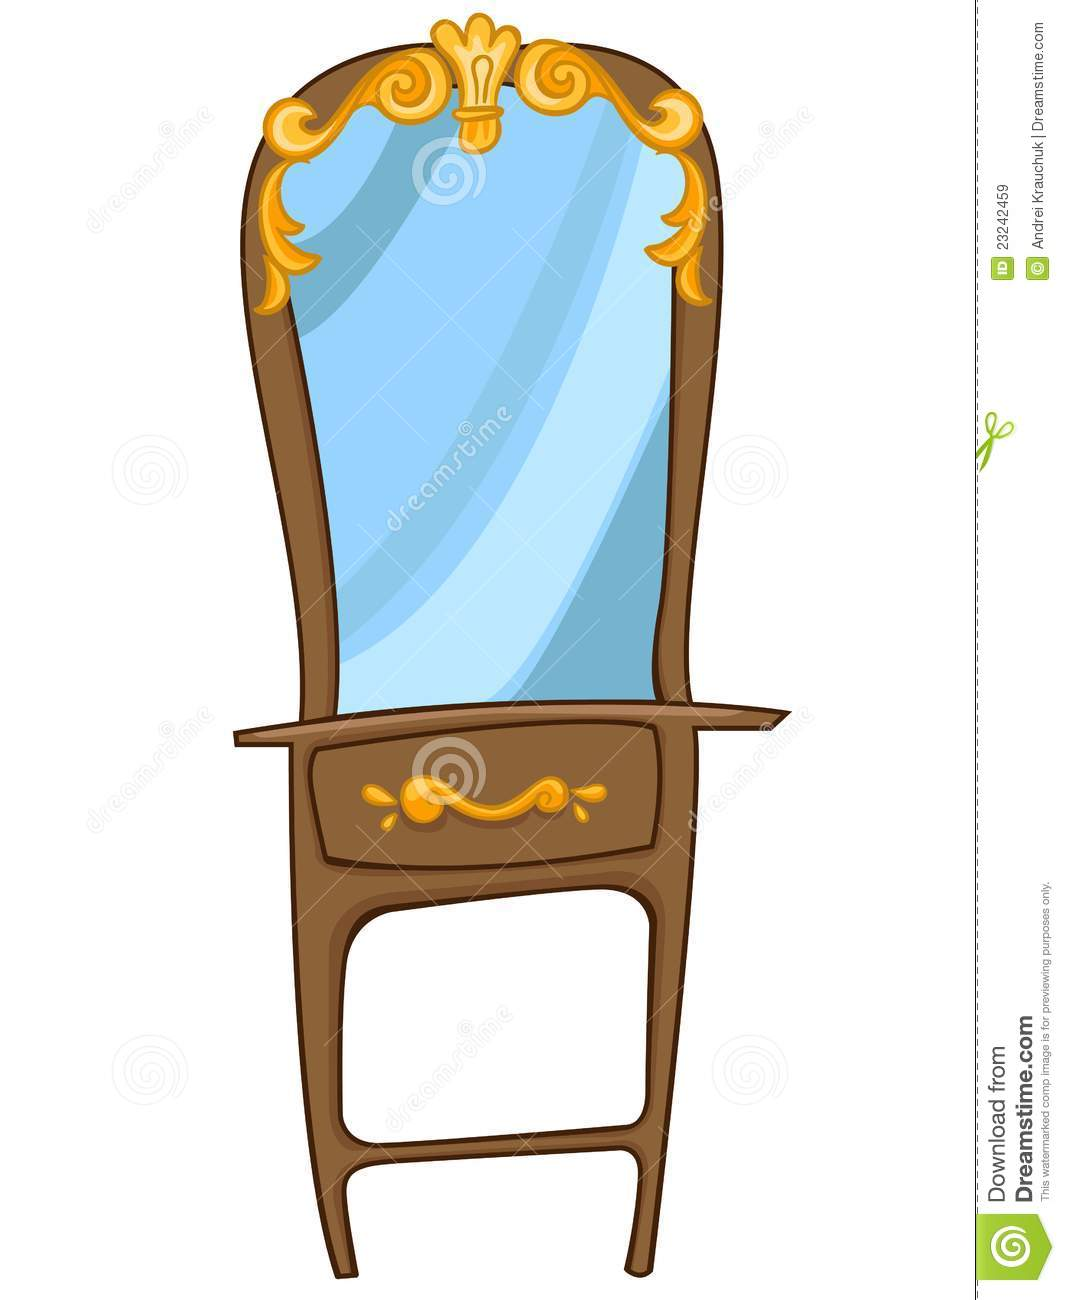 Cartoon Home Furniture Chest Of Drawers Royalty Free Stock Images ...